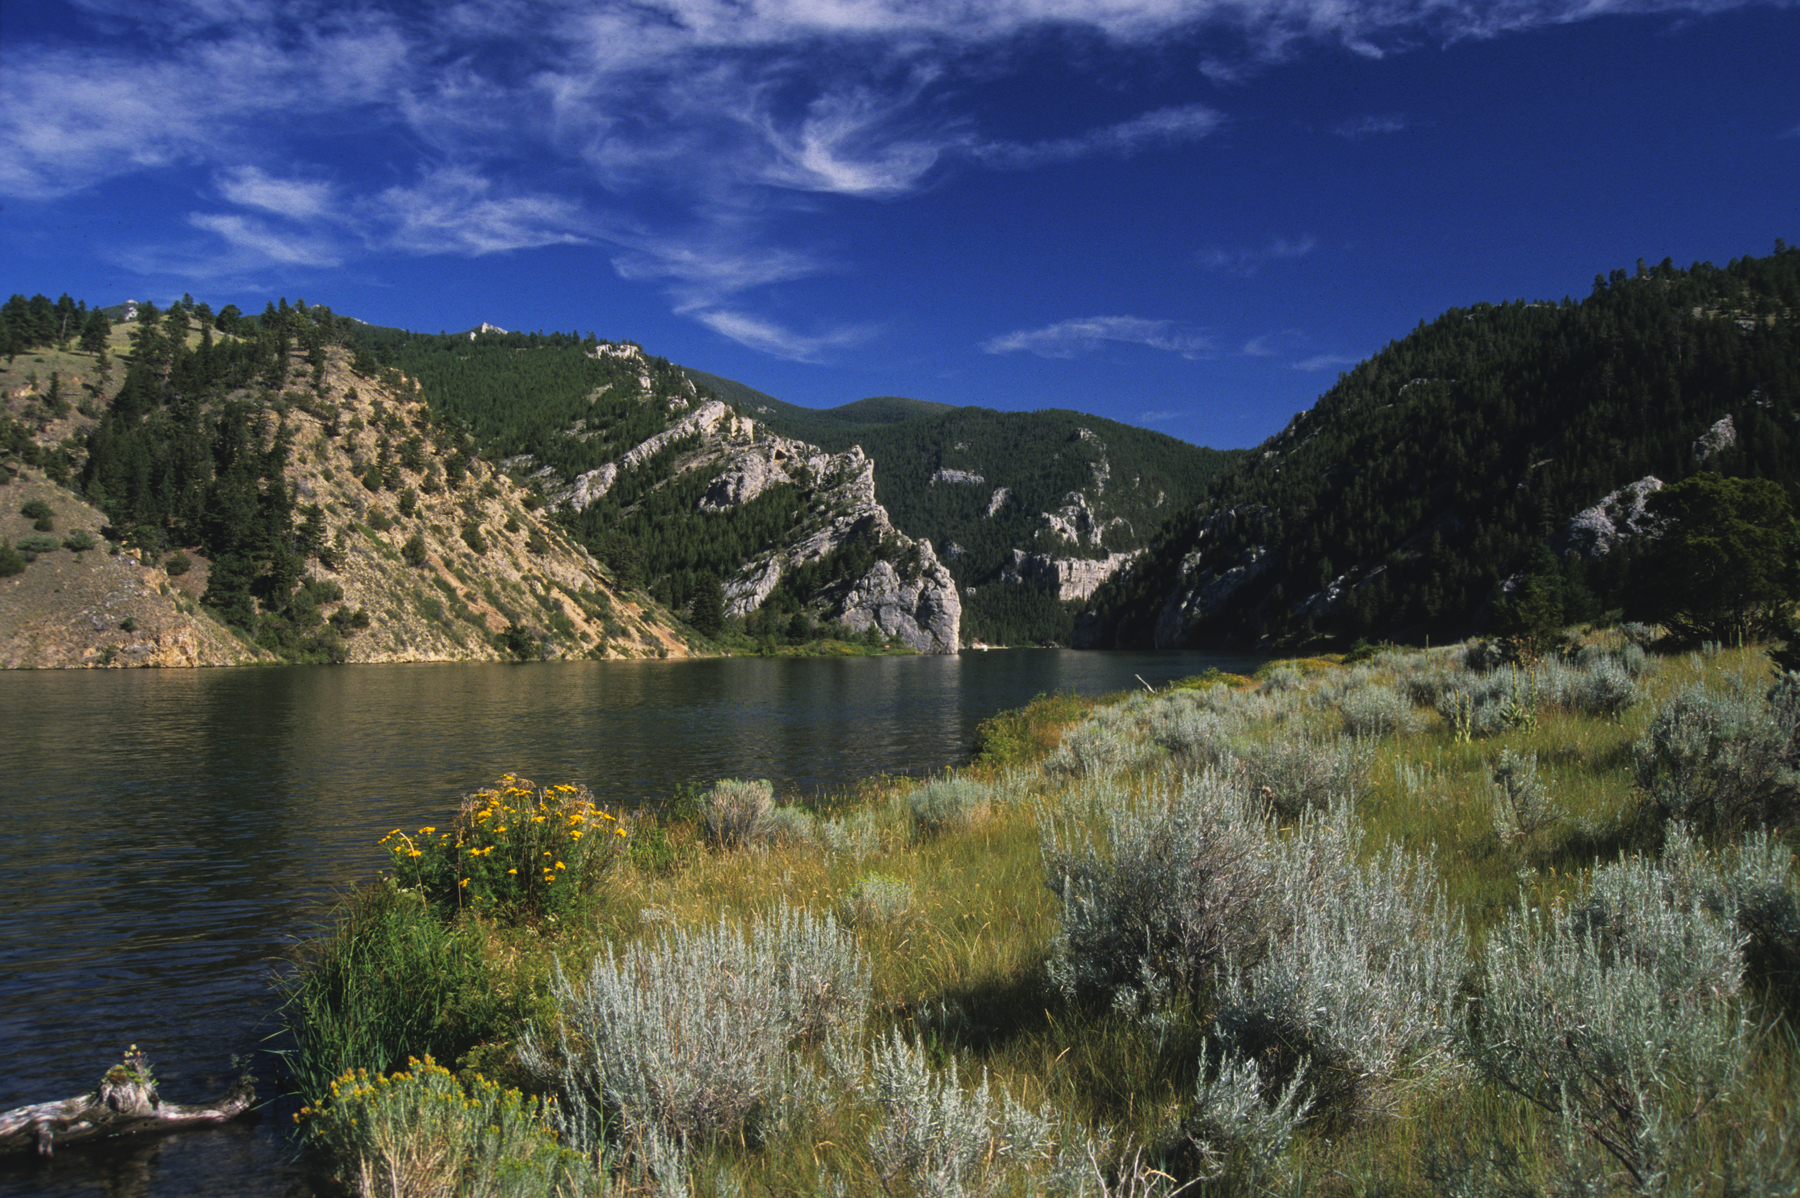 Montana's Greatest Wonder: The Missouri River (Part 2 of 5)